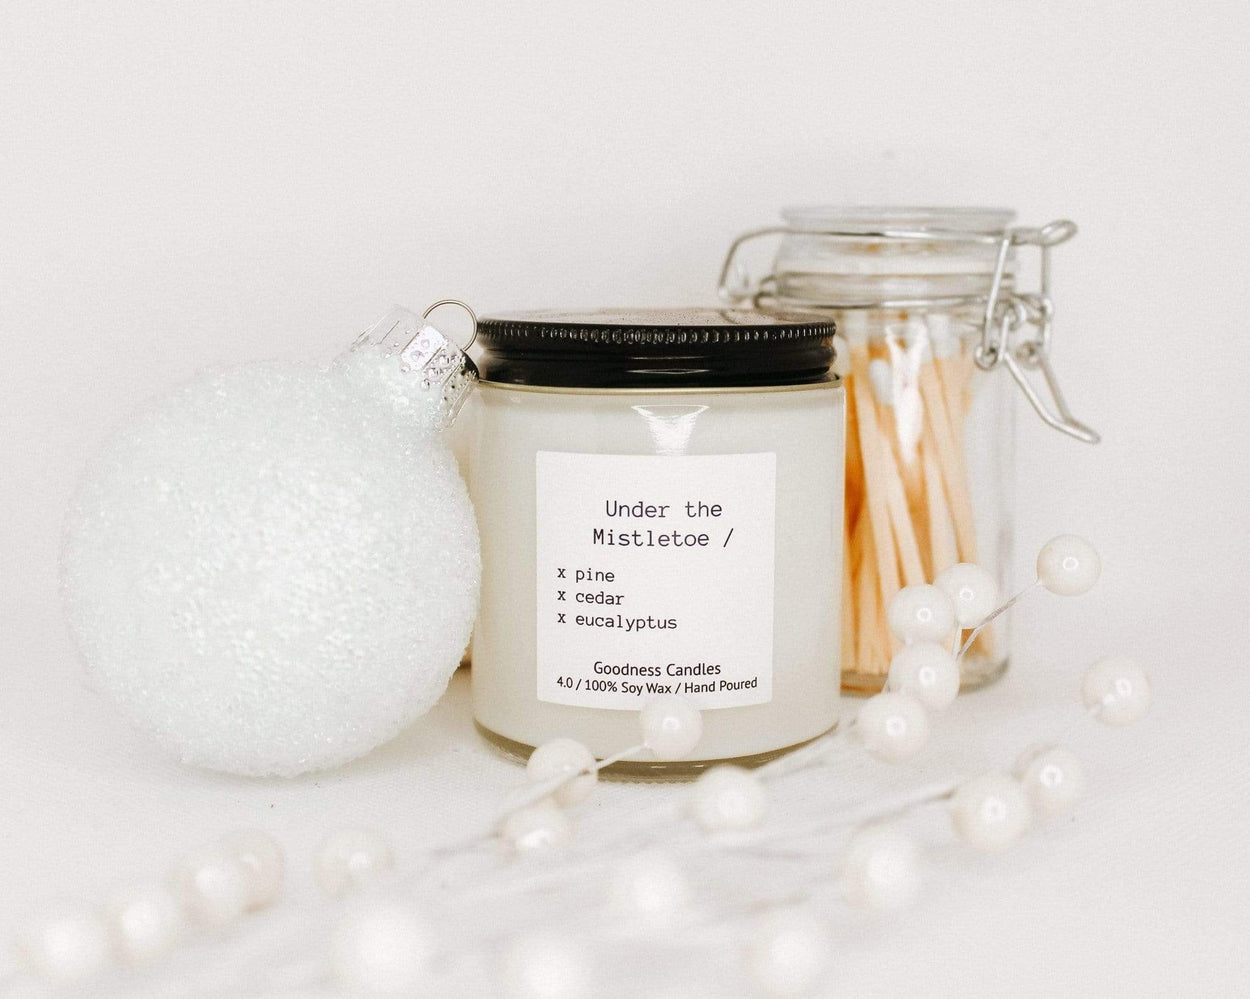 Under the Mistletoe Goodness Candles